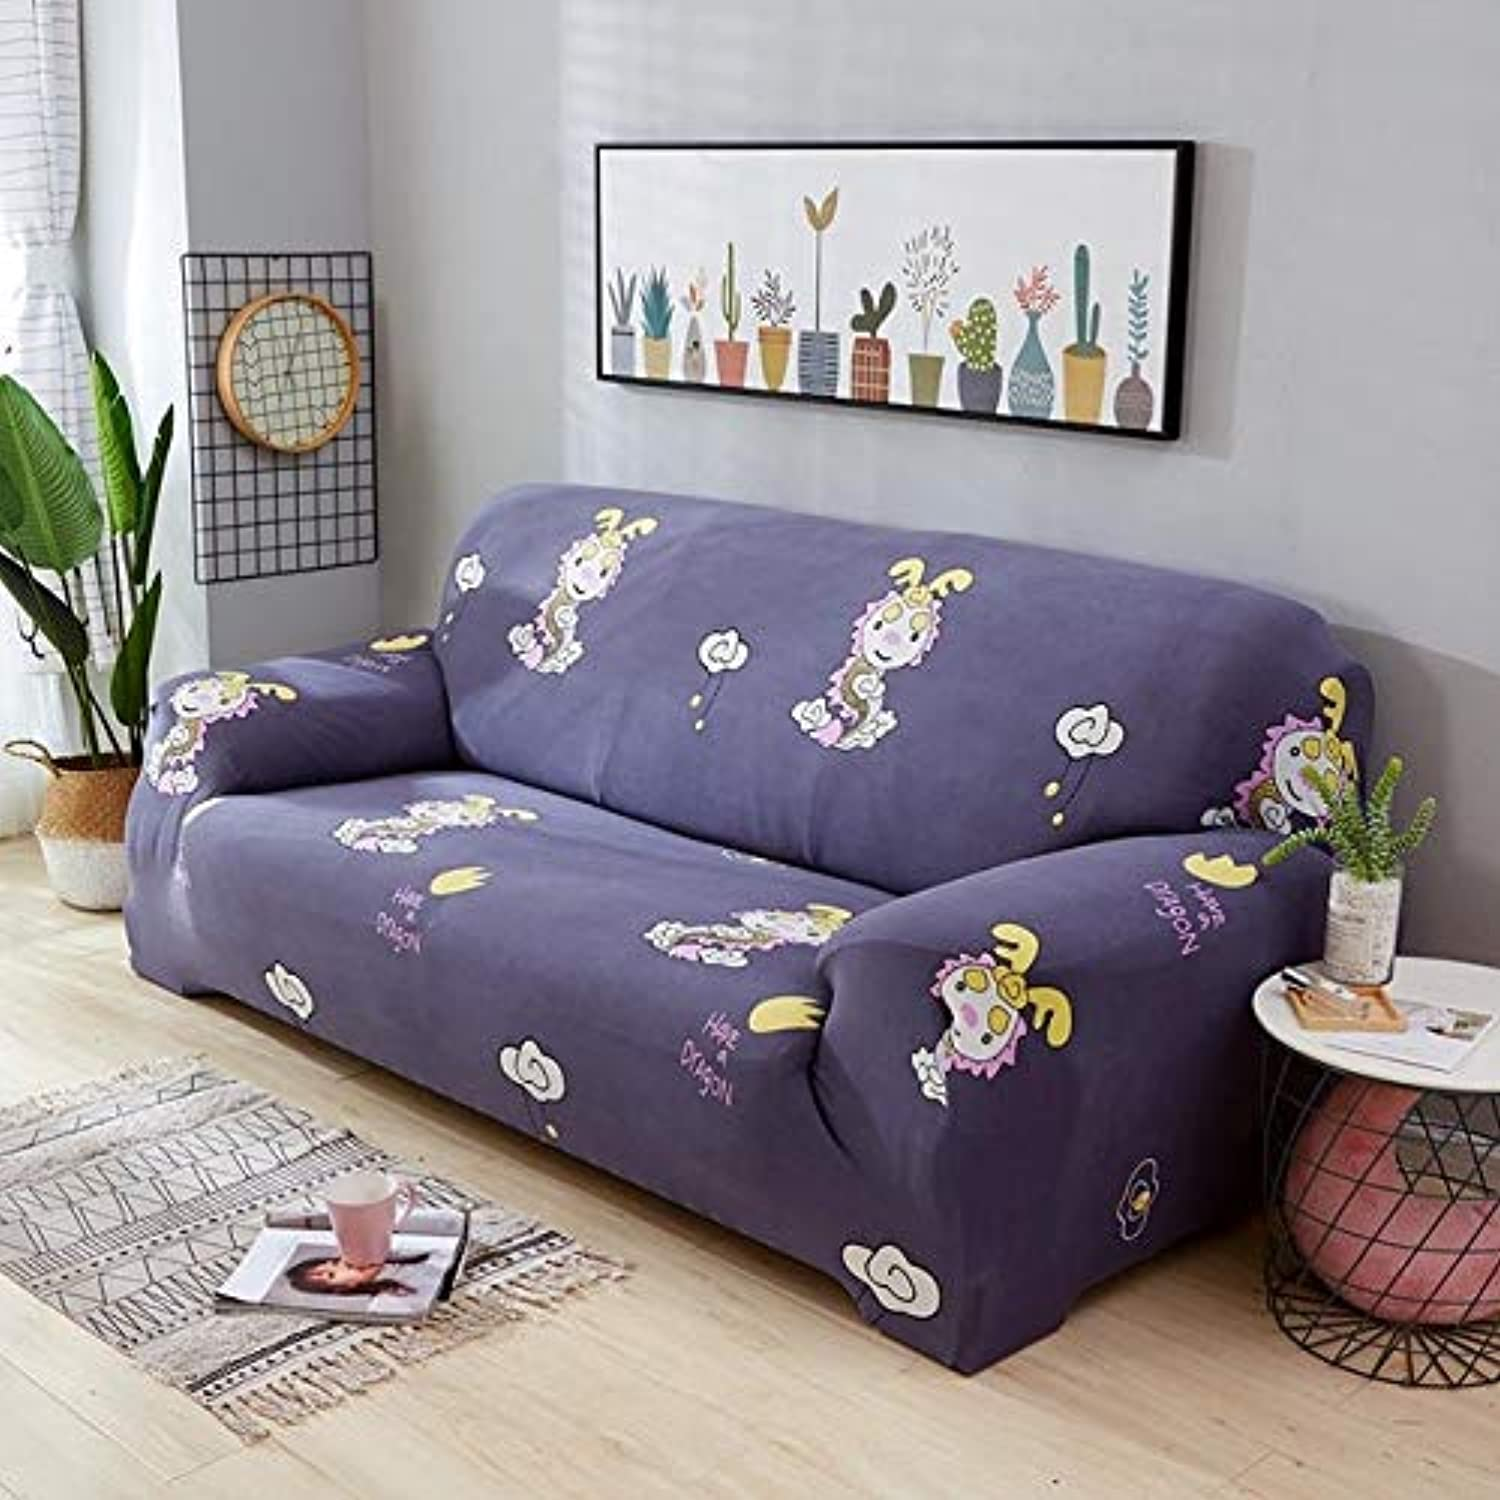 Elastic Sofa Wrap All-Inclusive Slip-Resistant Slipcovers Sofa Cover Furniture Predector Cushion Cover for 1 2 3 4 Seater Sofa   02, Two Seater